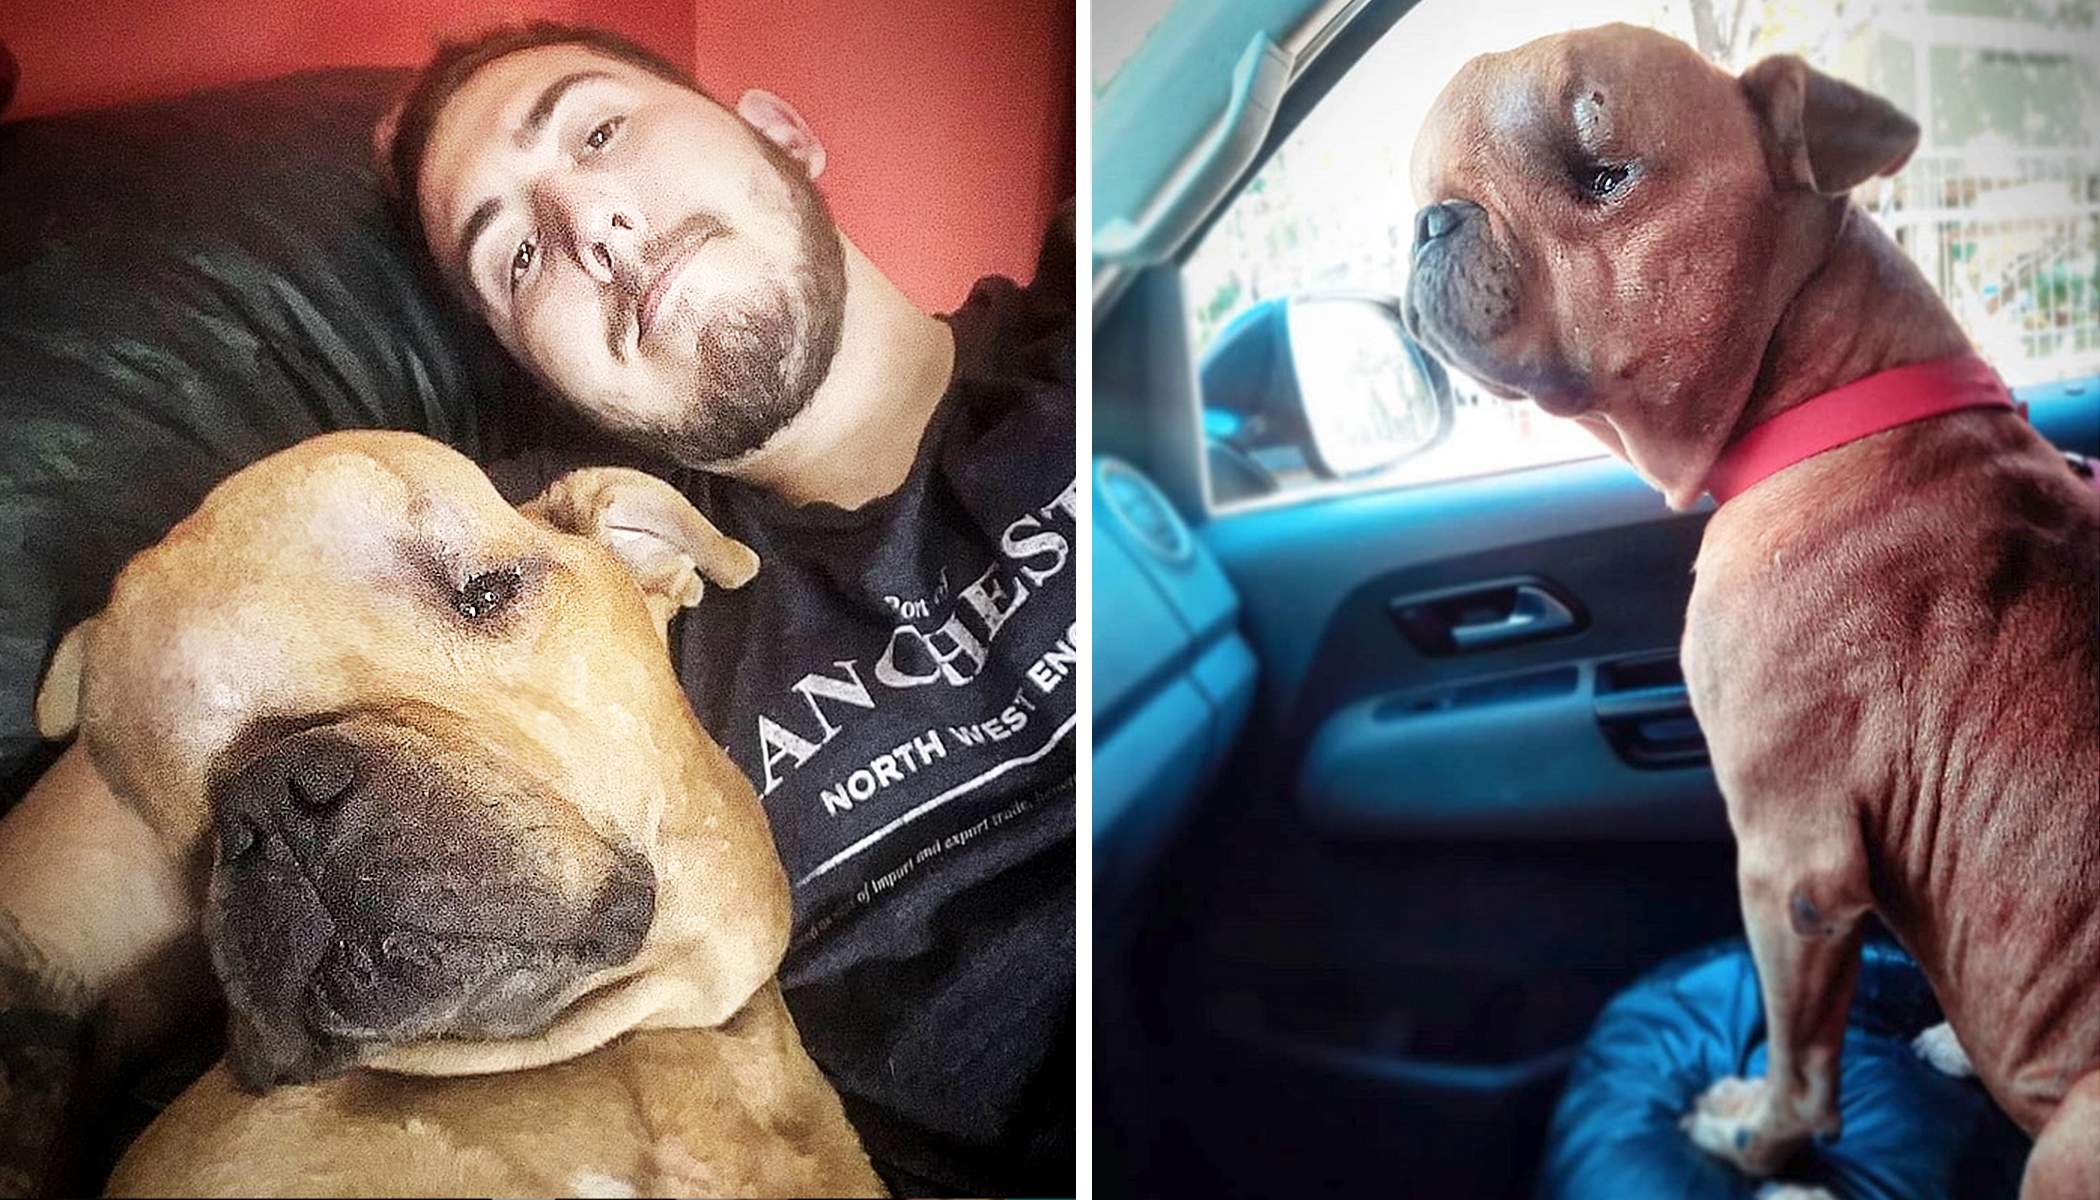 Man Adopts Dog With Massive Tumor on His Head and Offers 'Unconditional Love' in His Last Days